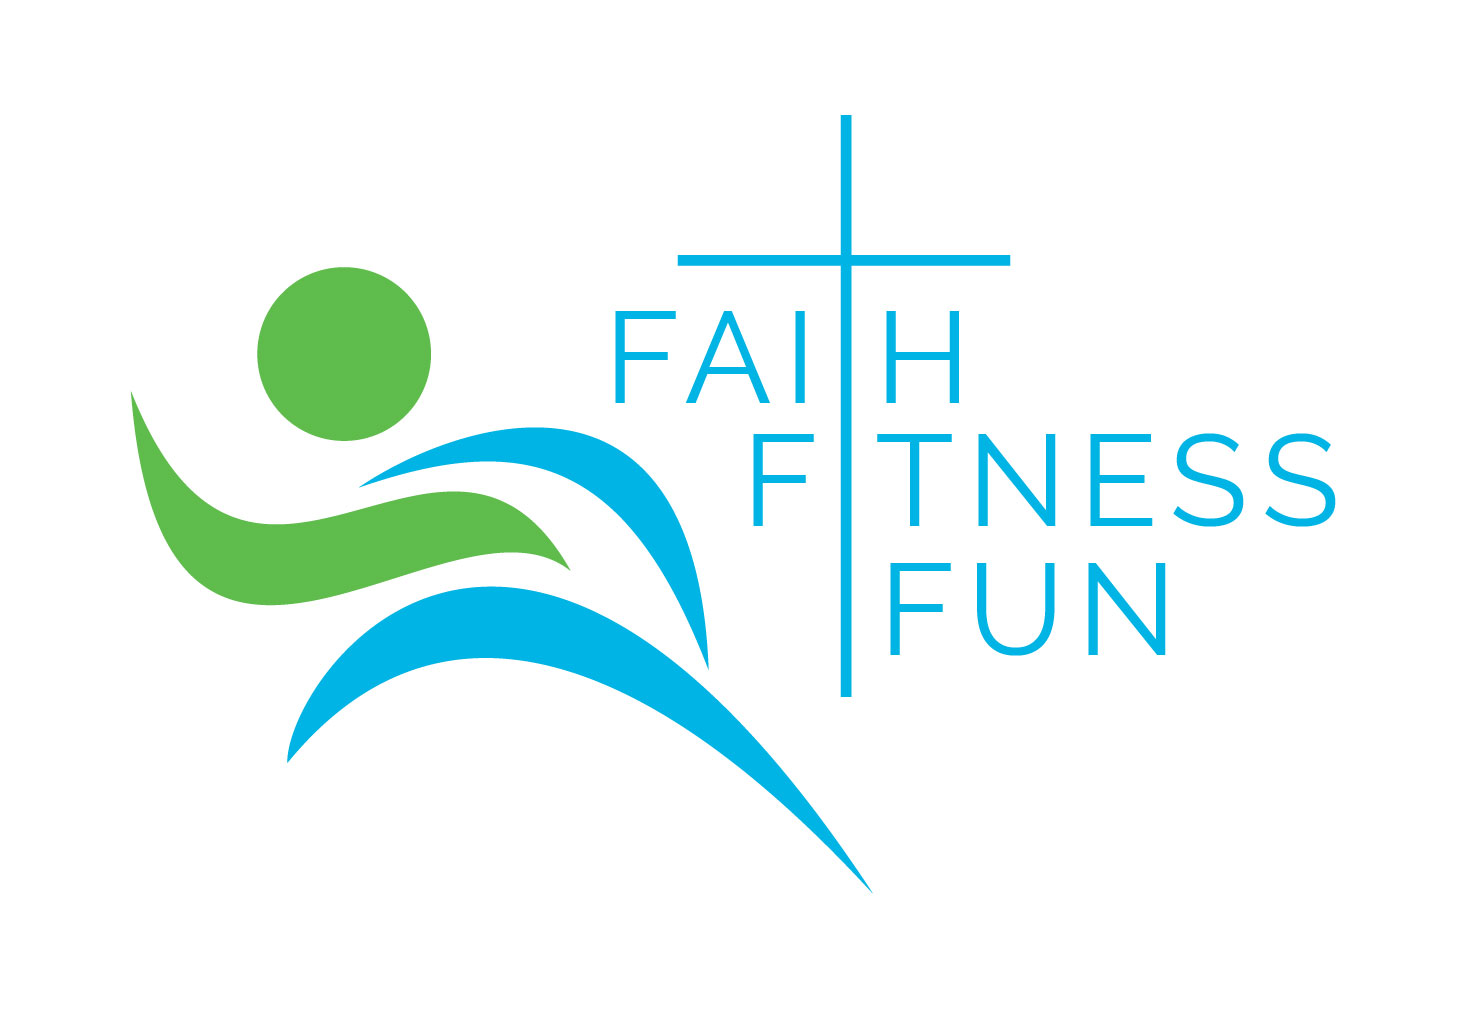 Faith, Fitness Run